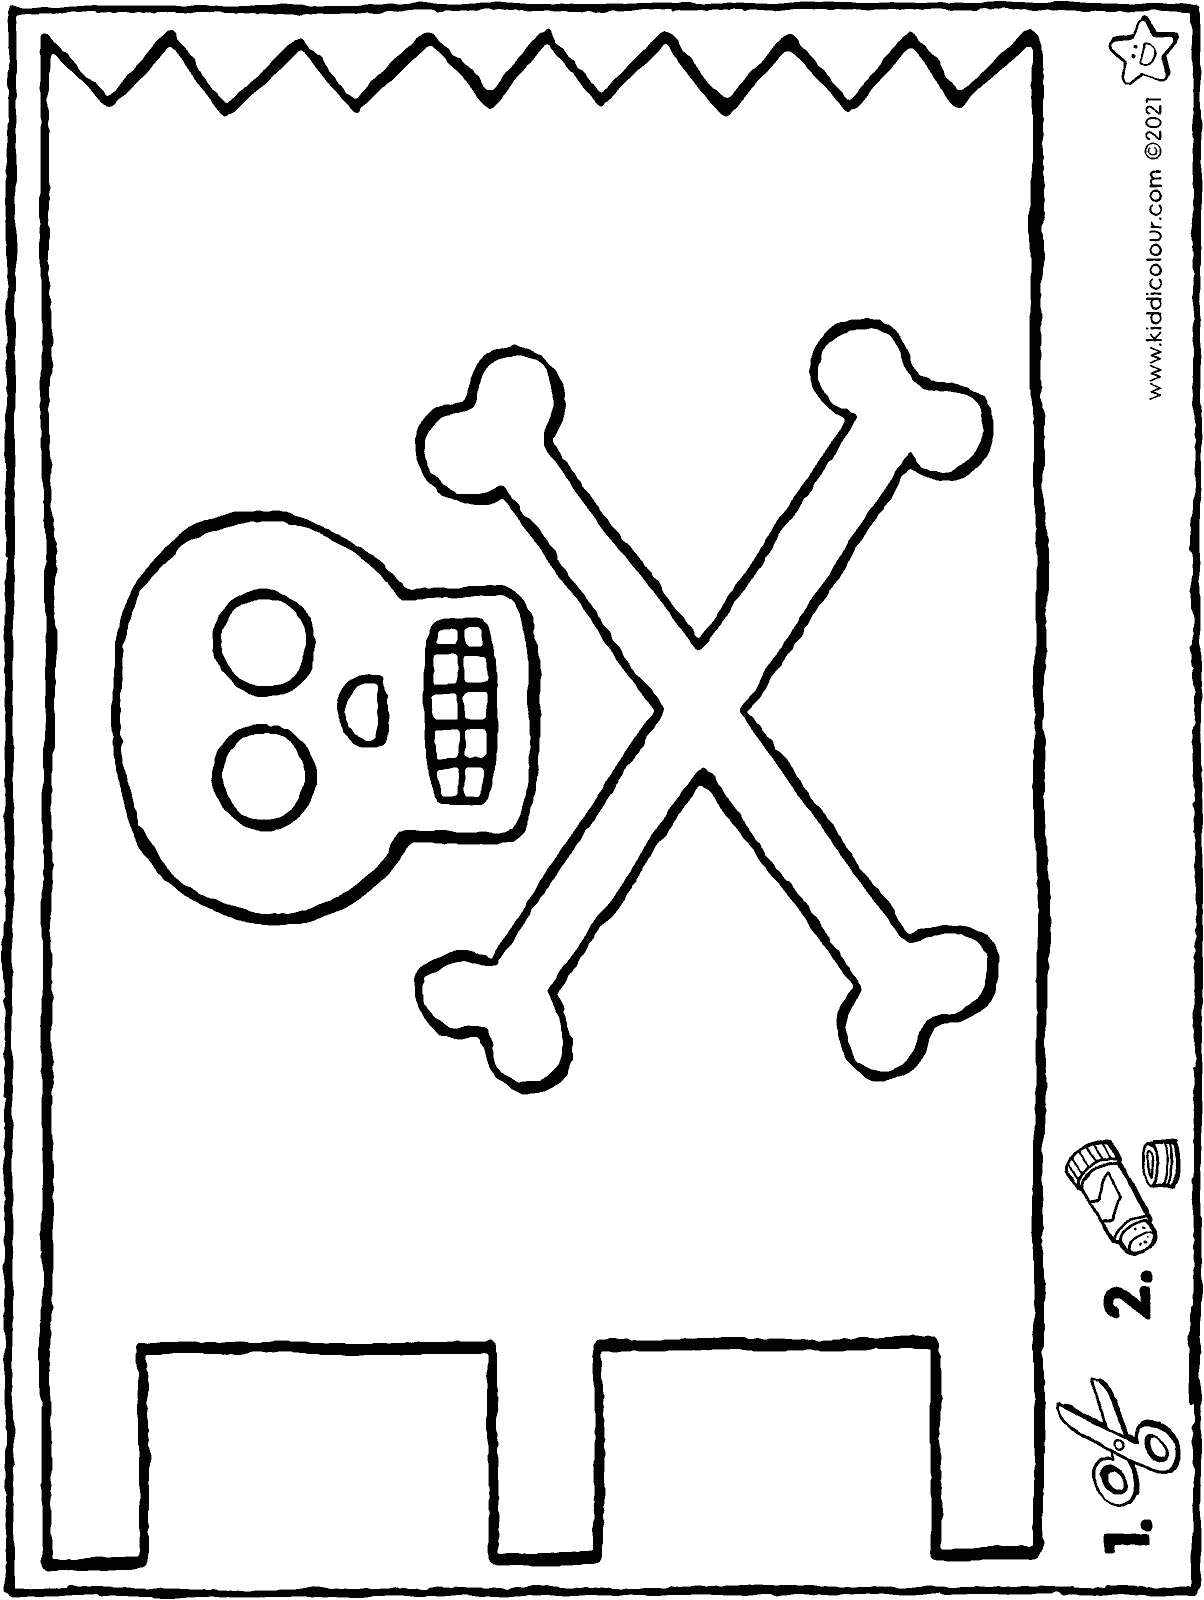 make your own pirate flag colouring page drawing picture 01H